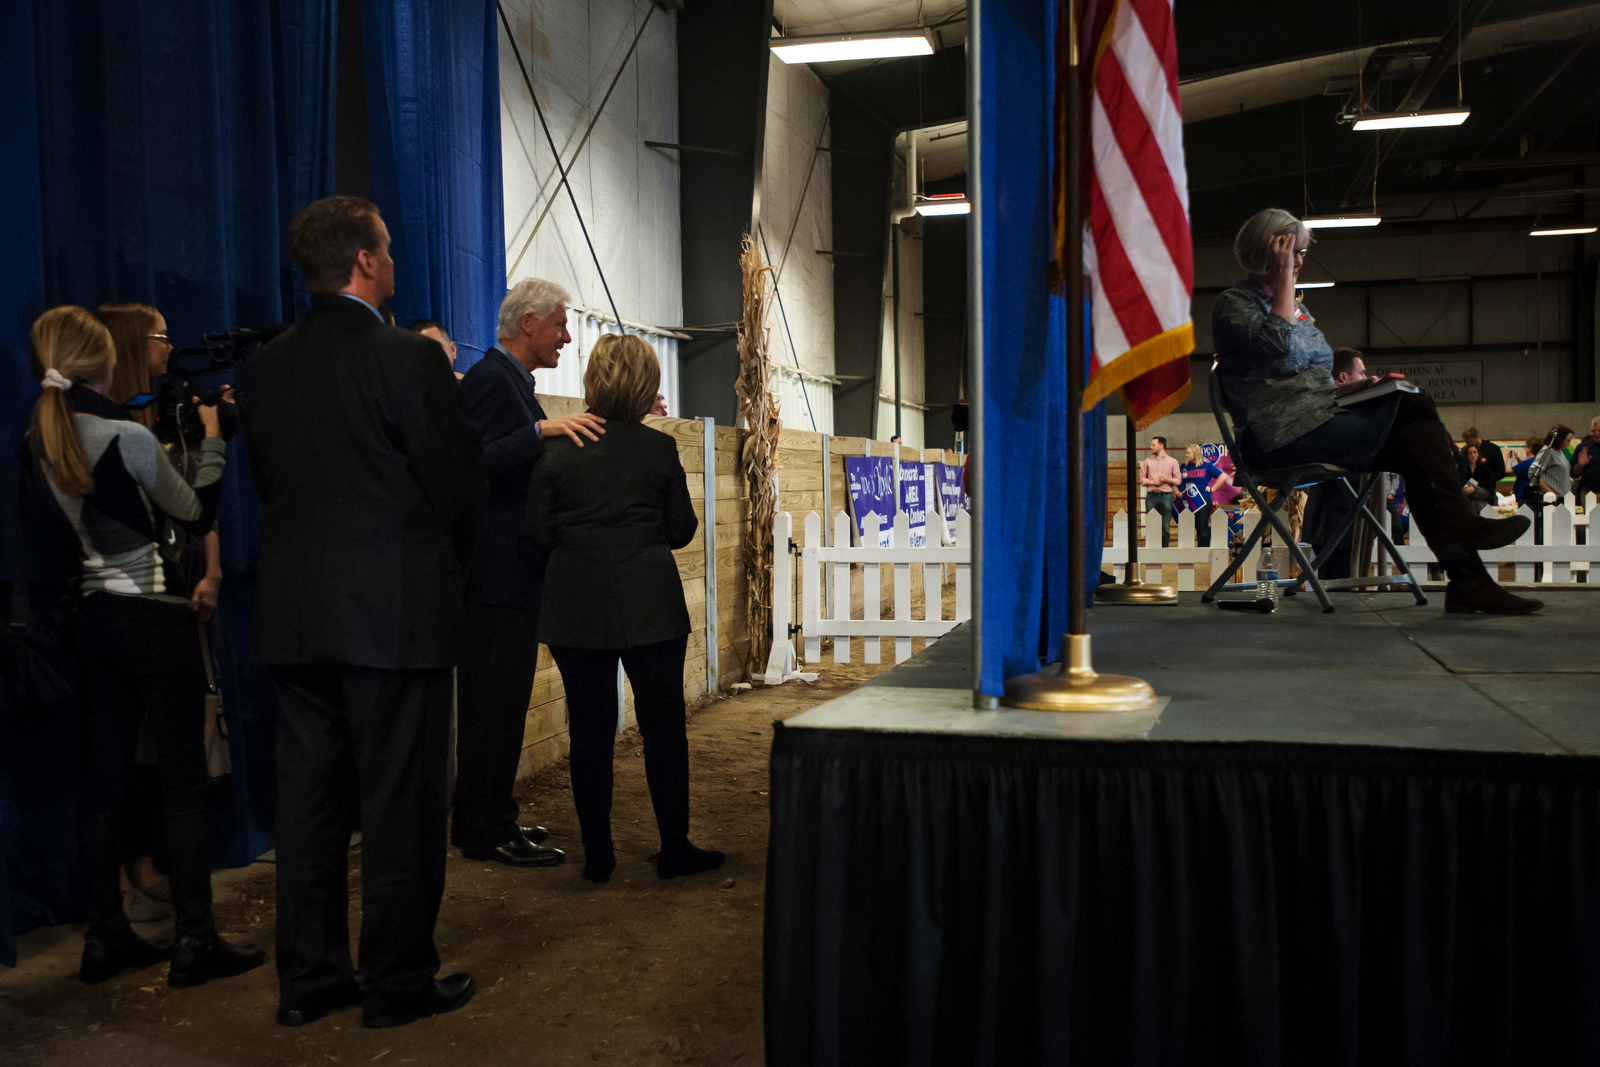 Democratic U.S. presidential candidate Hillary Clinton and Former U.S. President Bill Clinton speak behind the stage at the Central Iowa Democrats Fall Barbecue in Ames, Iowa November 15, 2015.